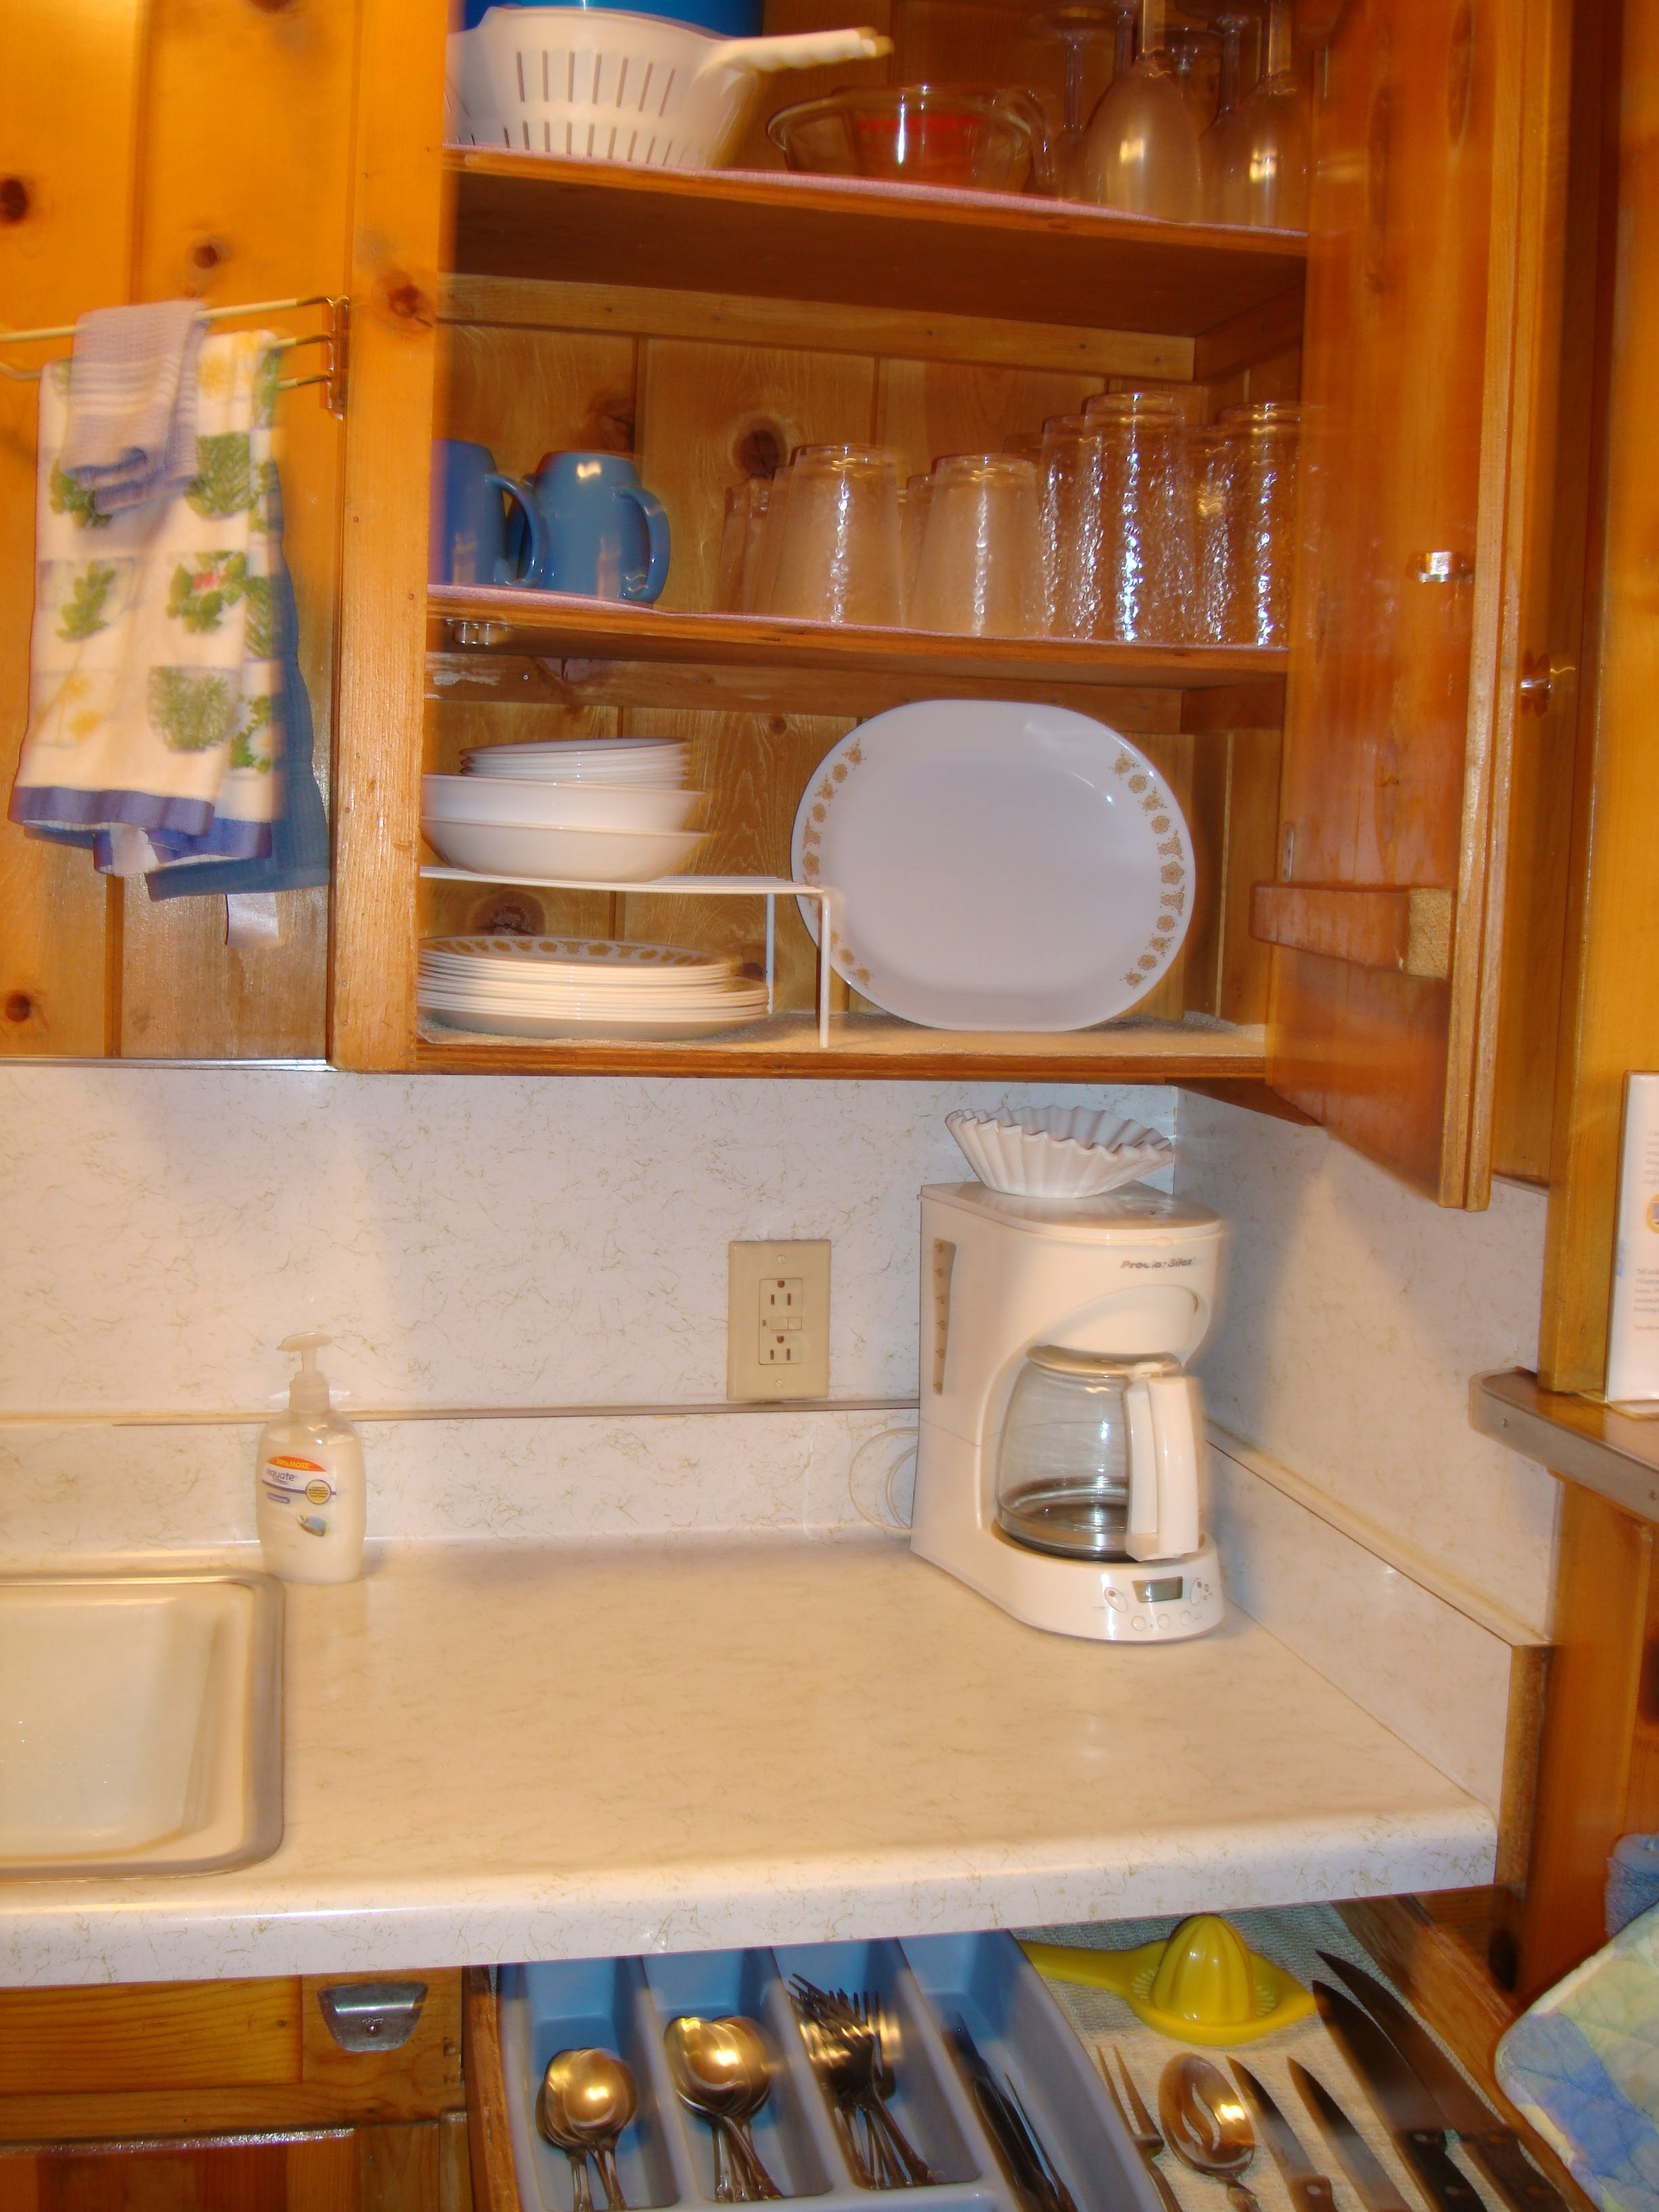 Kitchen cupboards in 1-bedroom cabin.